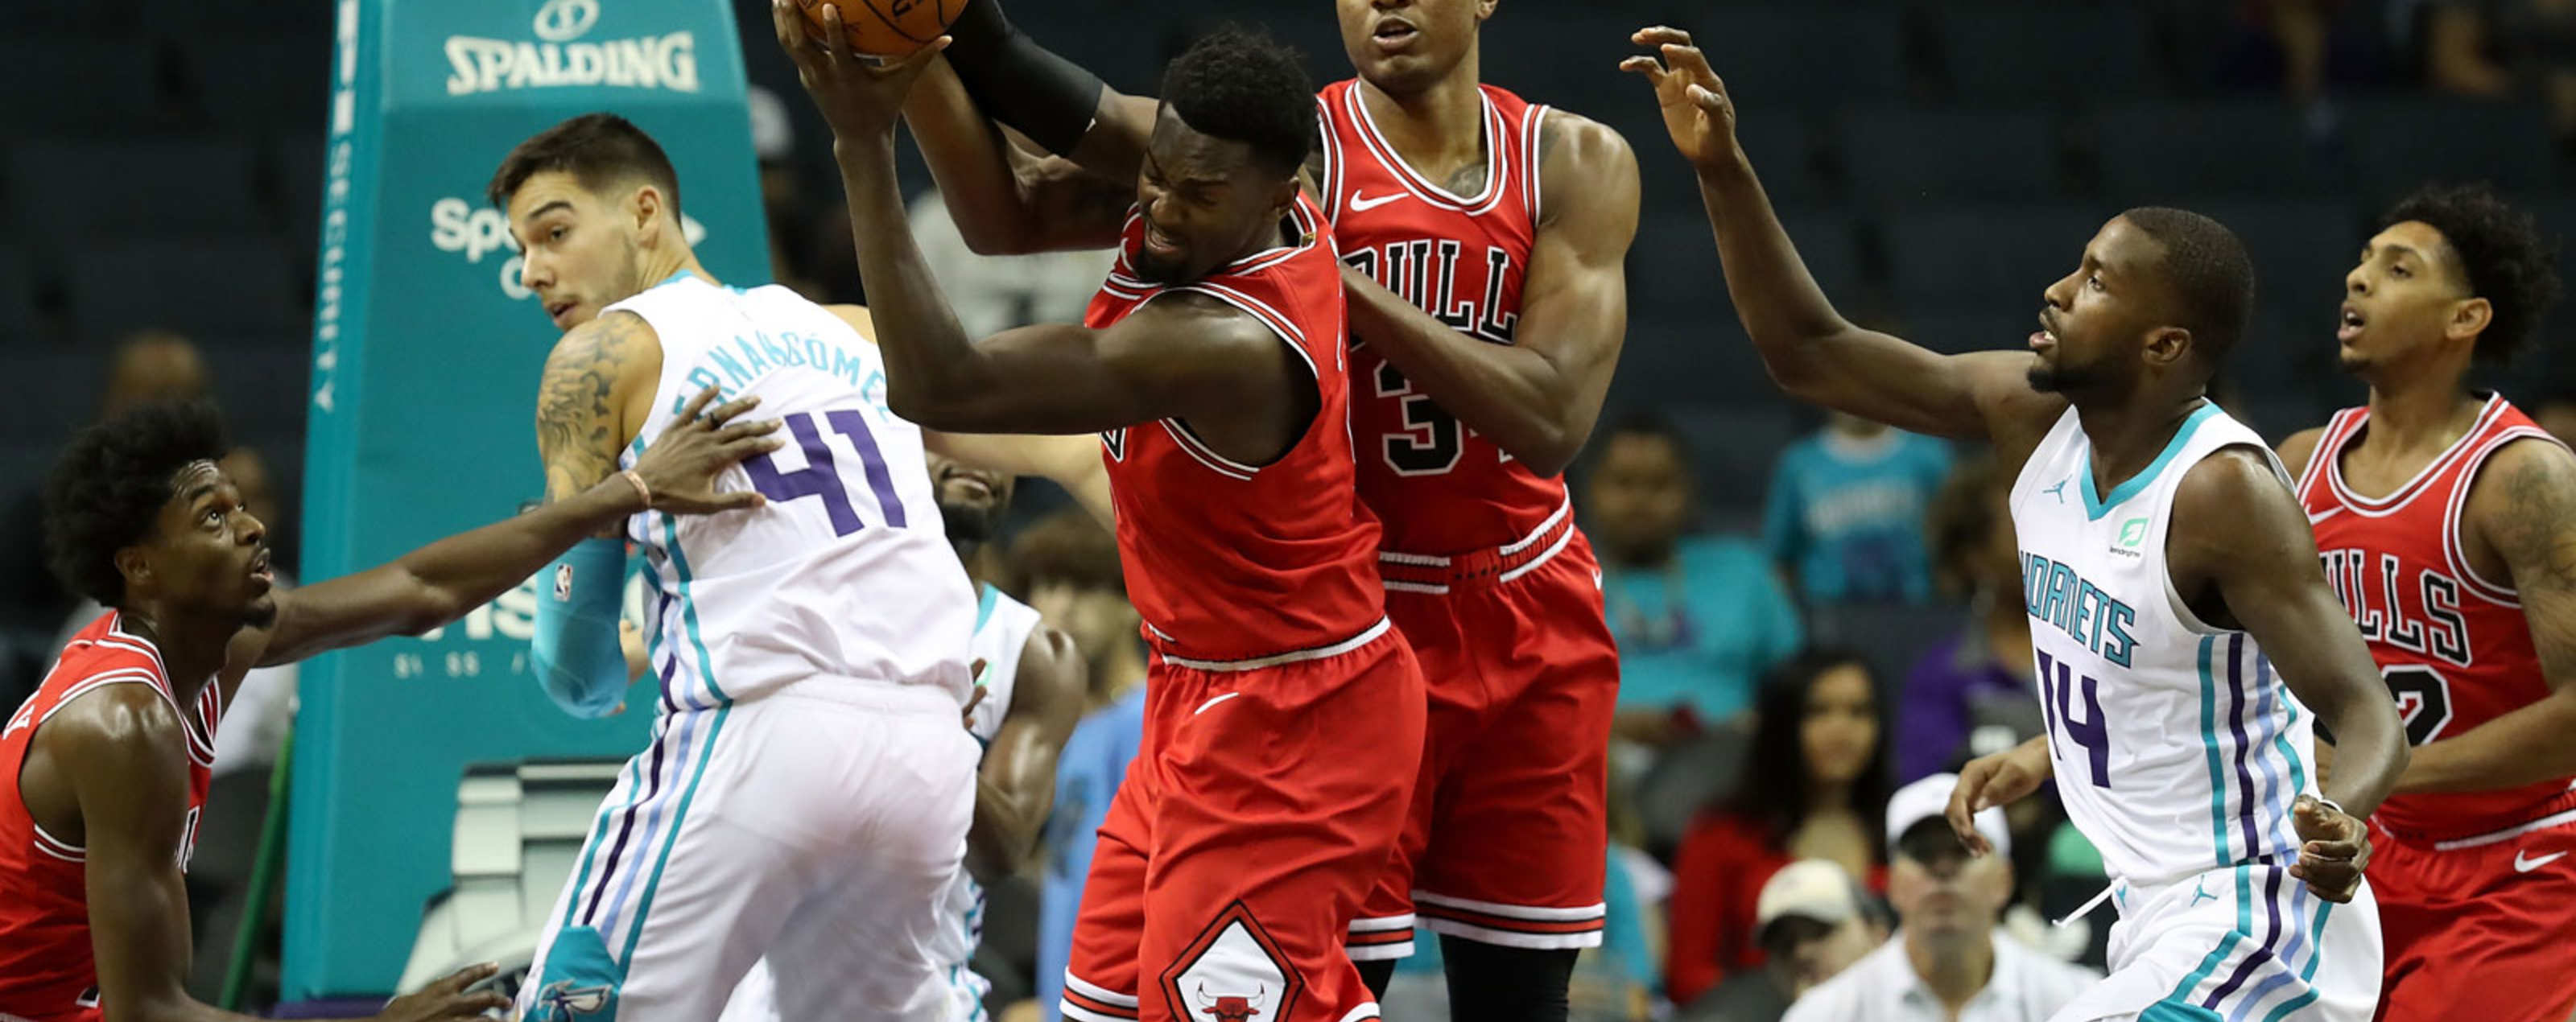 : Bobby Portis #5 of the Chicago Bulls grabs the ball against the Charlotte Hornets during their game at Spectrum Center on October 8, 2018 in Charlotte, North Carolina.